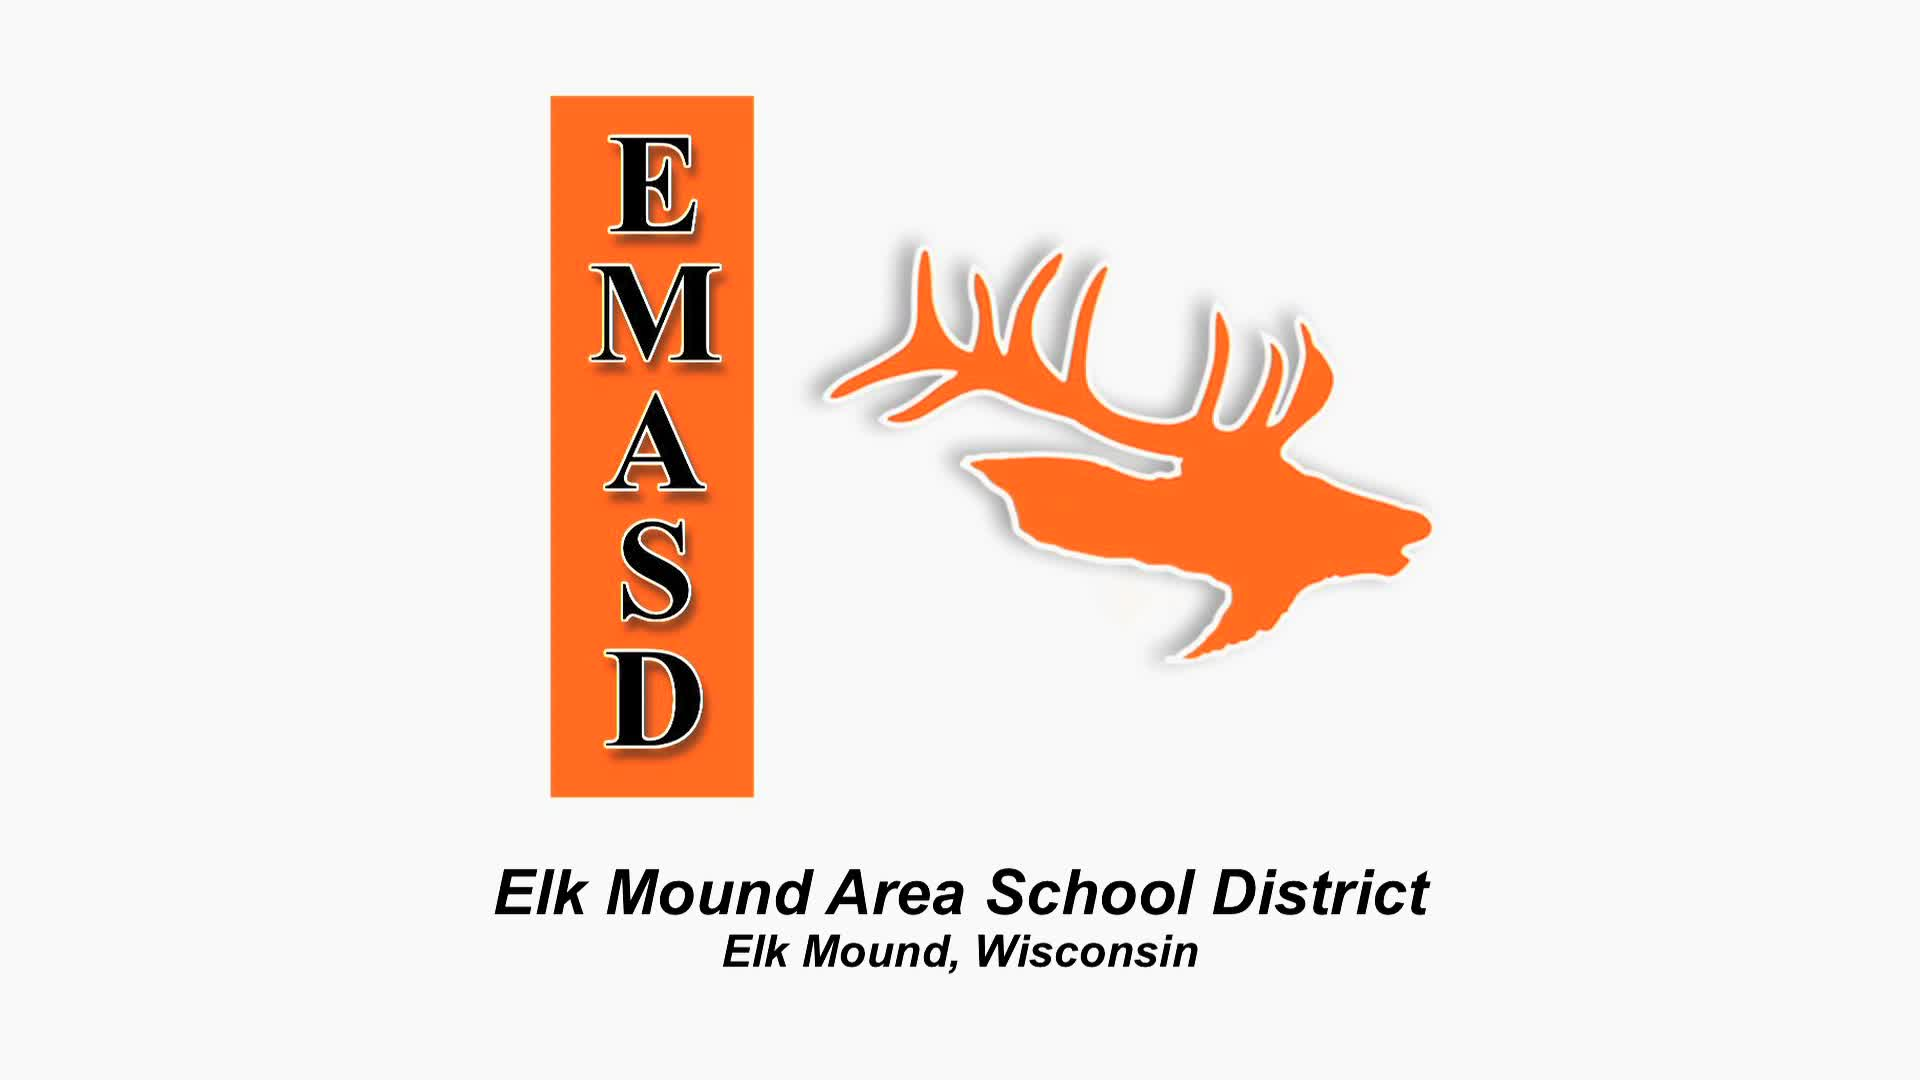 Elk Mound Area School District Informational Video...